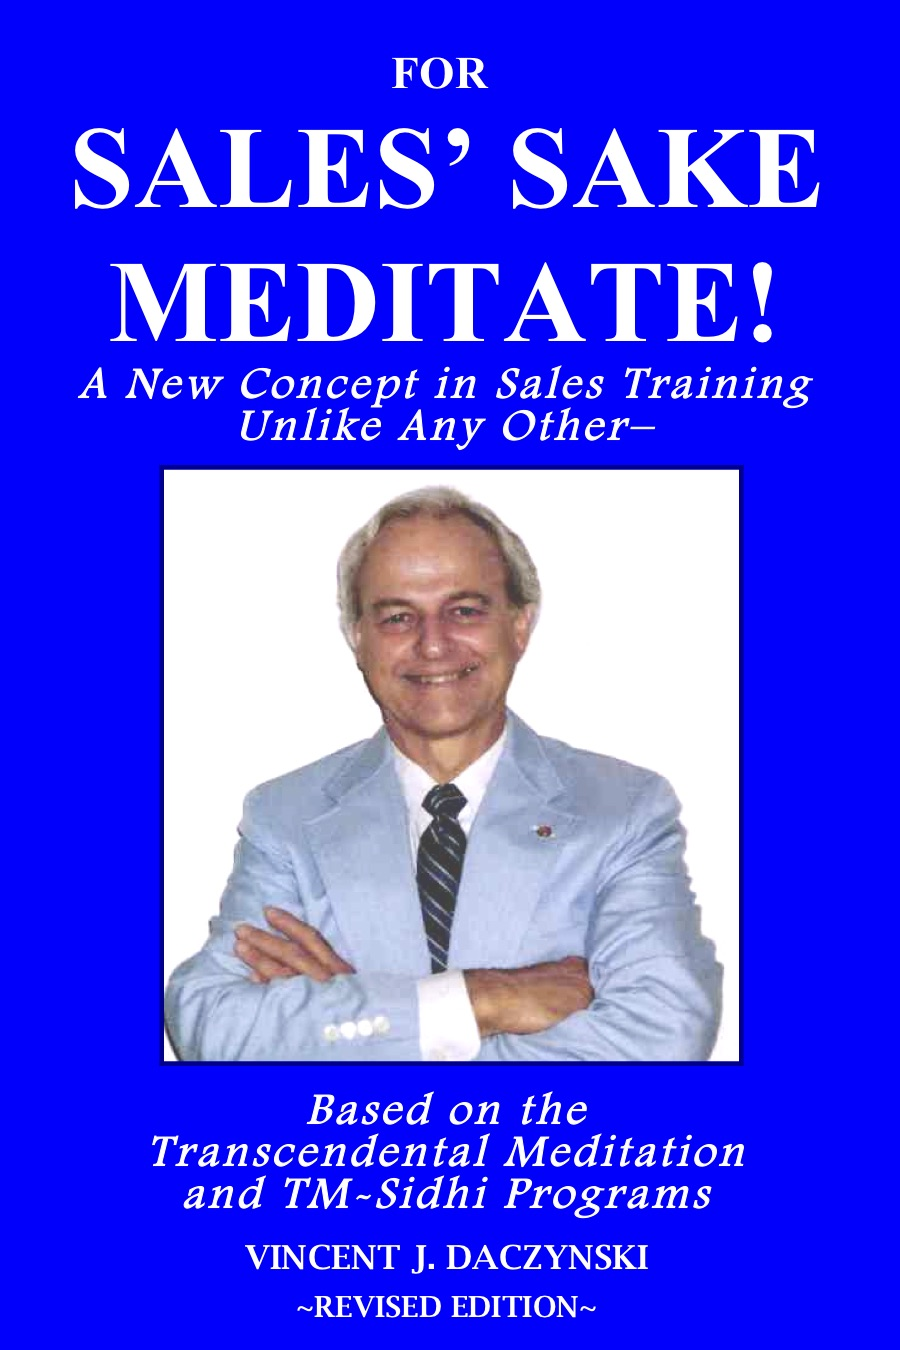 motivational sales training book: Sales training based on the Transcendental Meditation and TM-Sidhi programs; among best sales training books